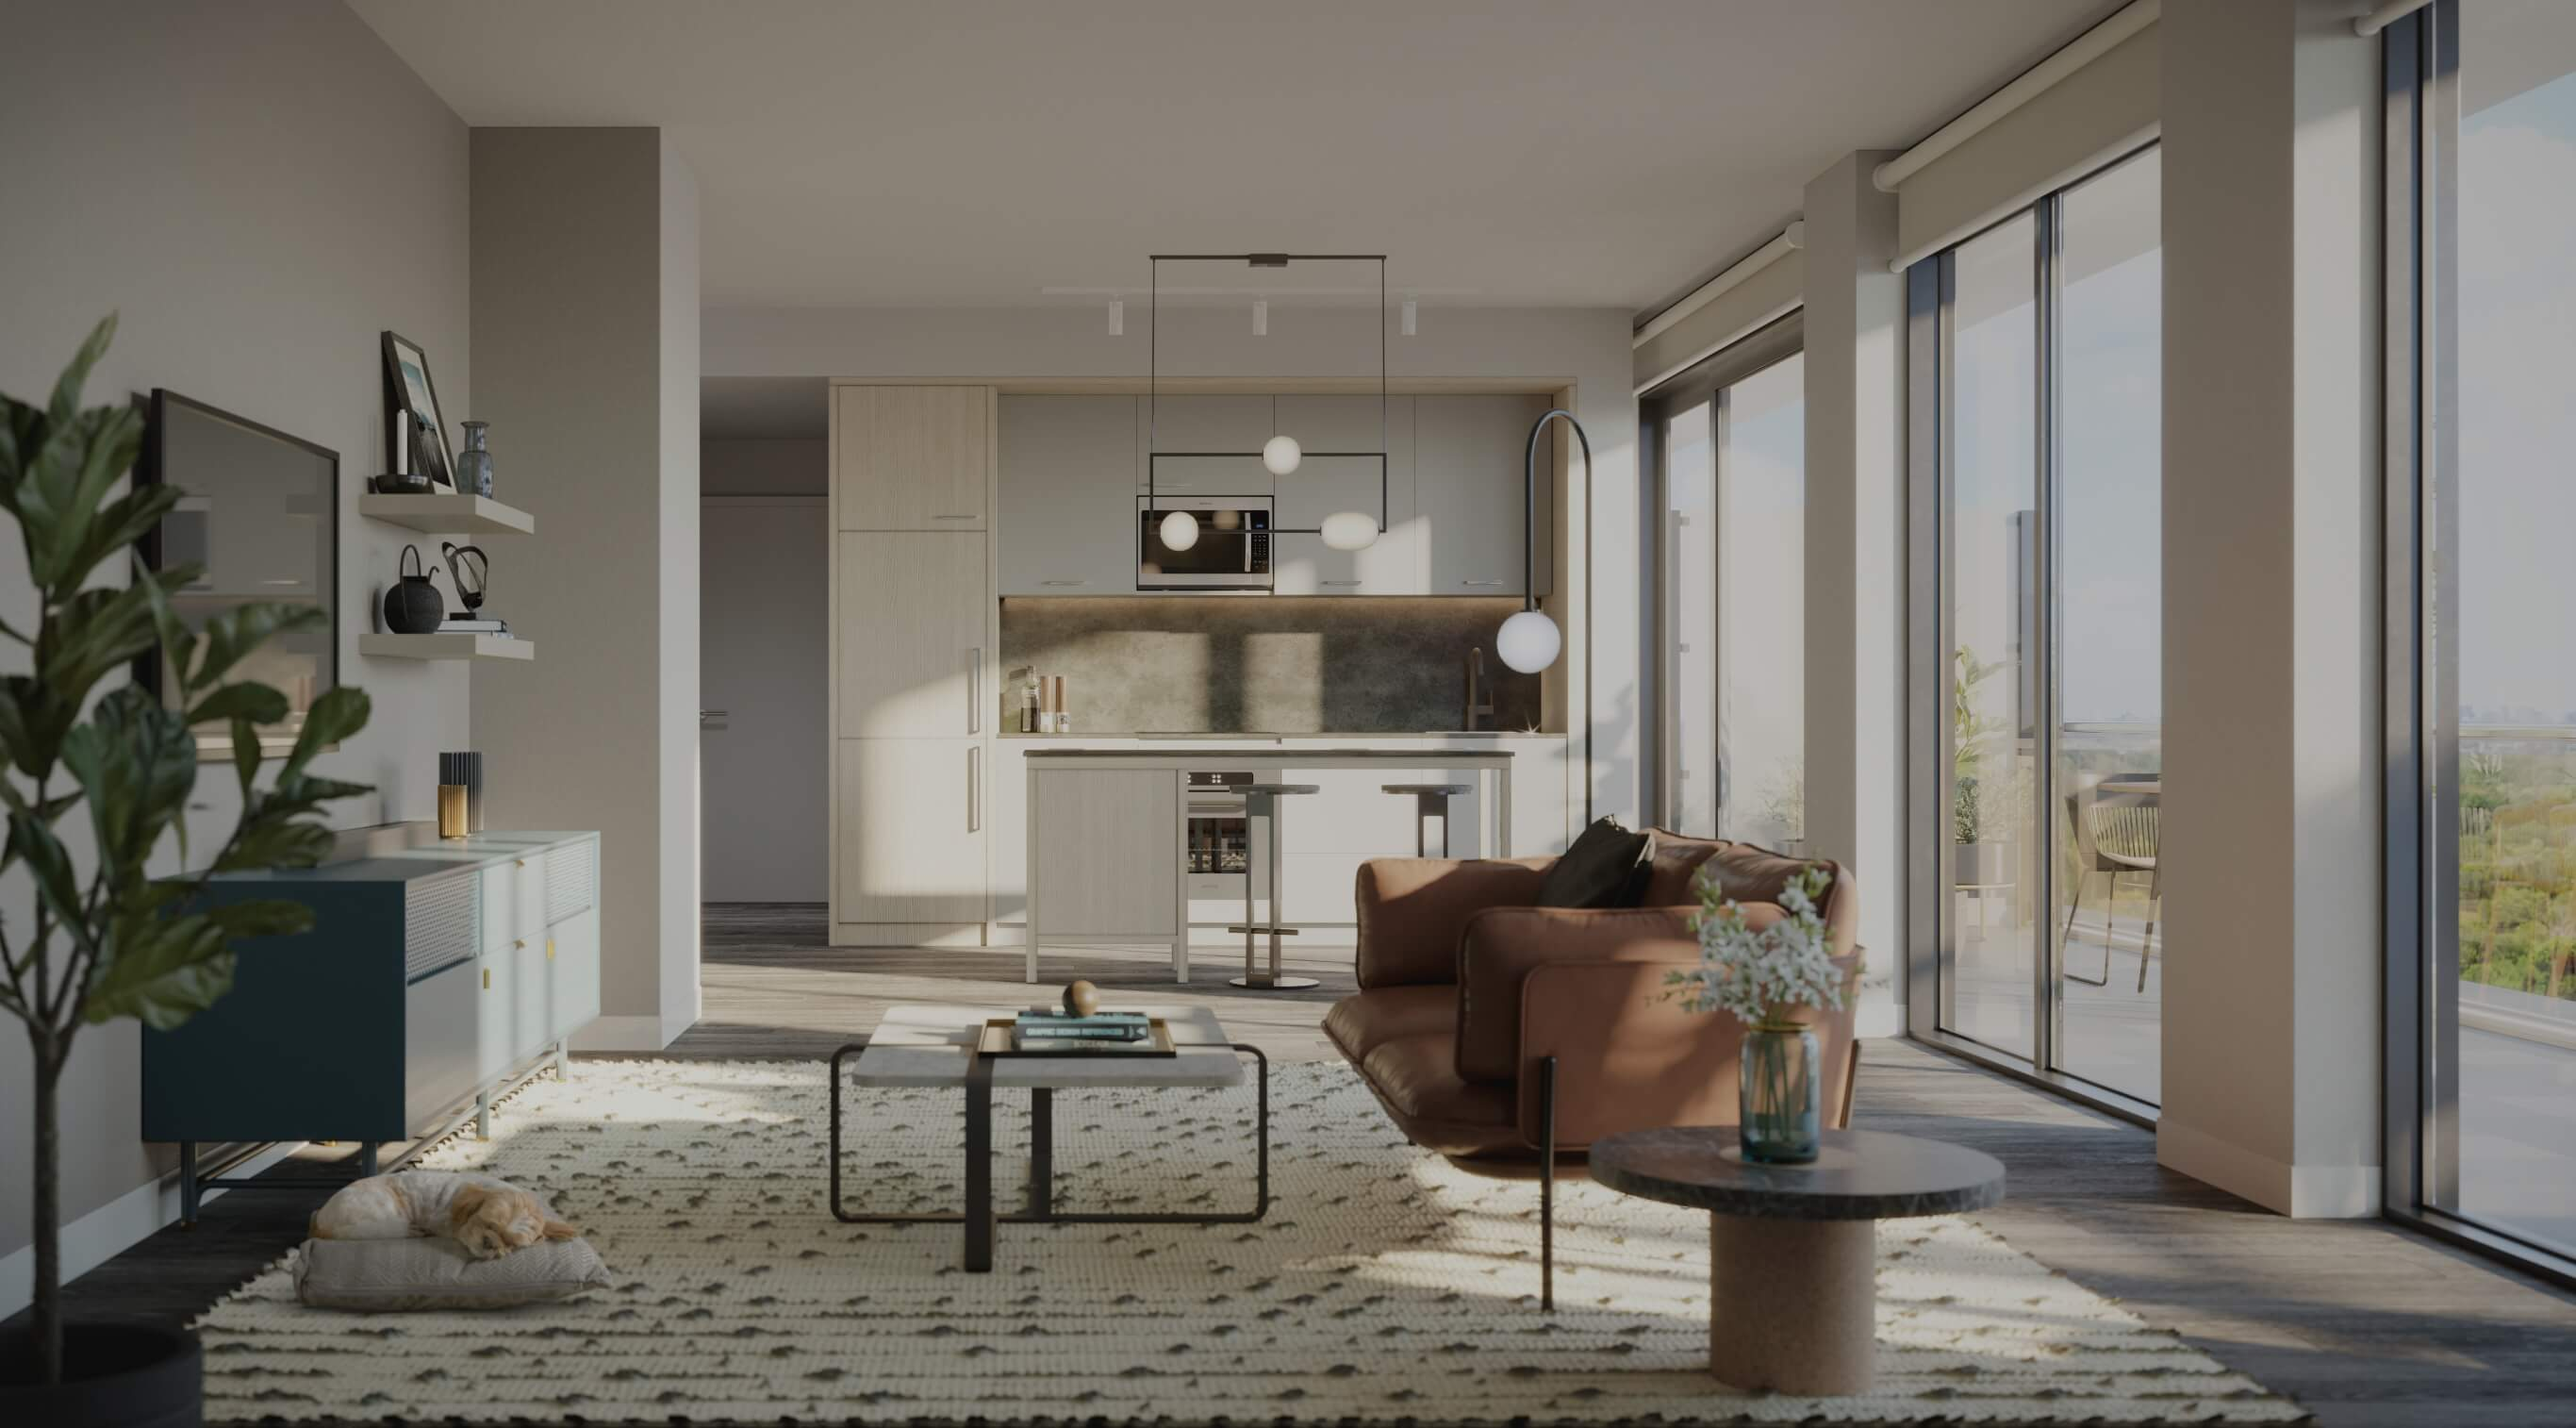 marling spring the tailor suites rendering